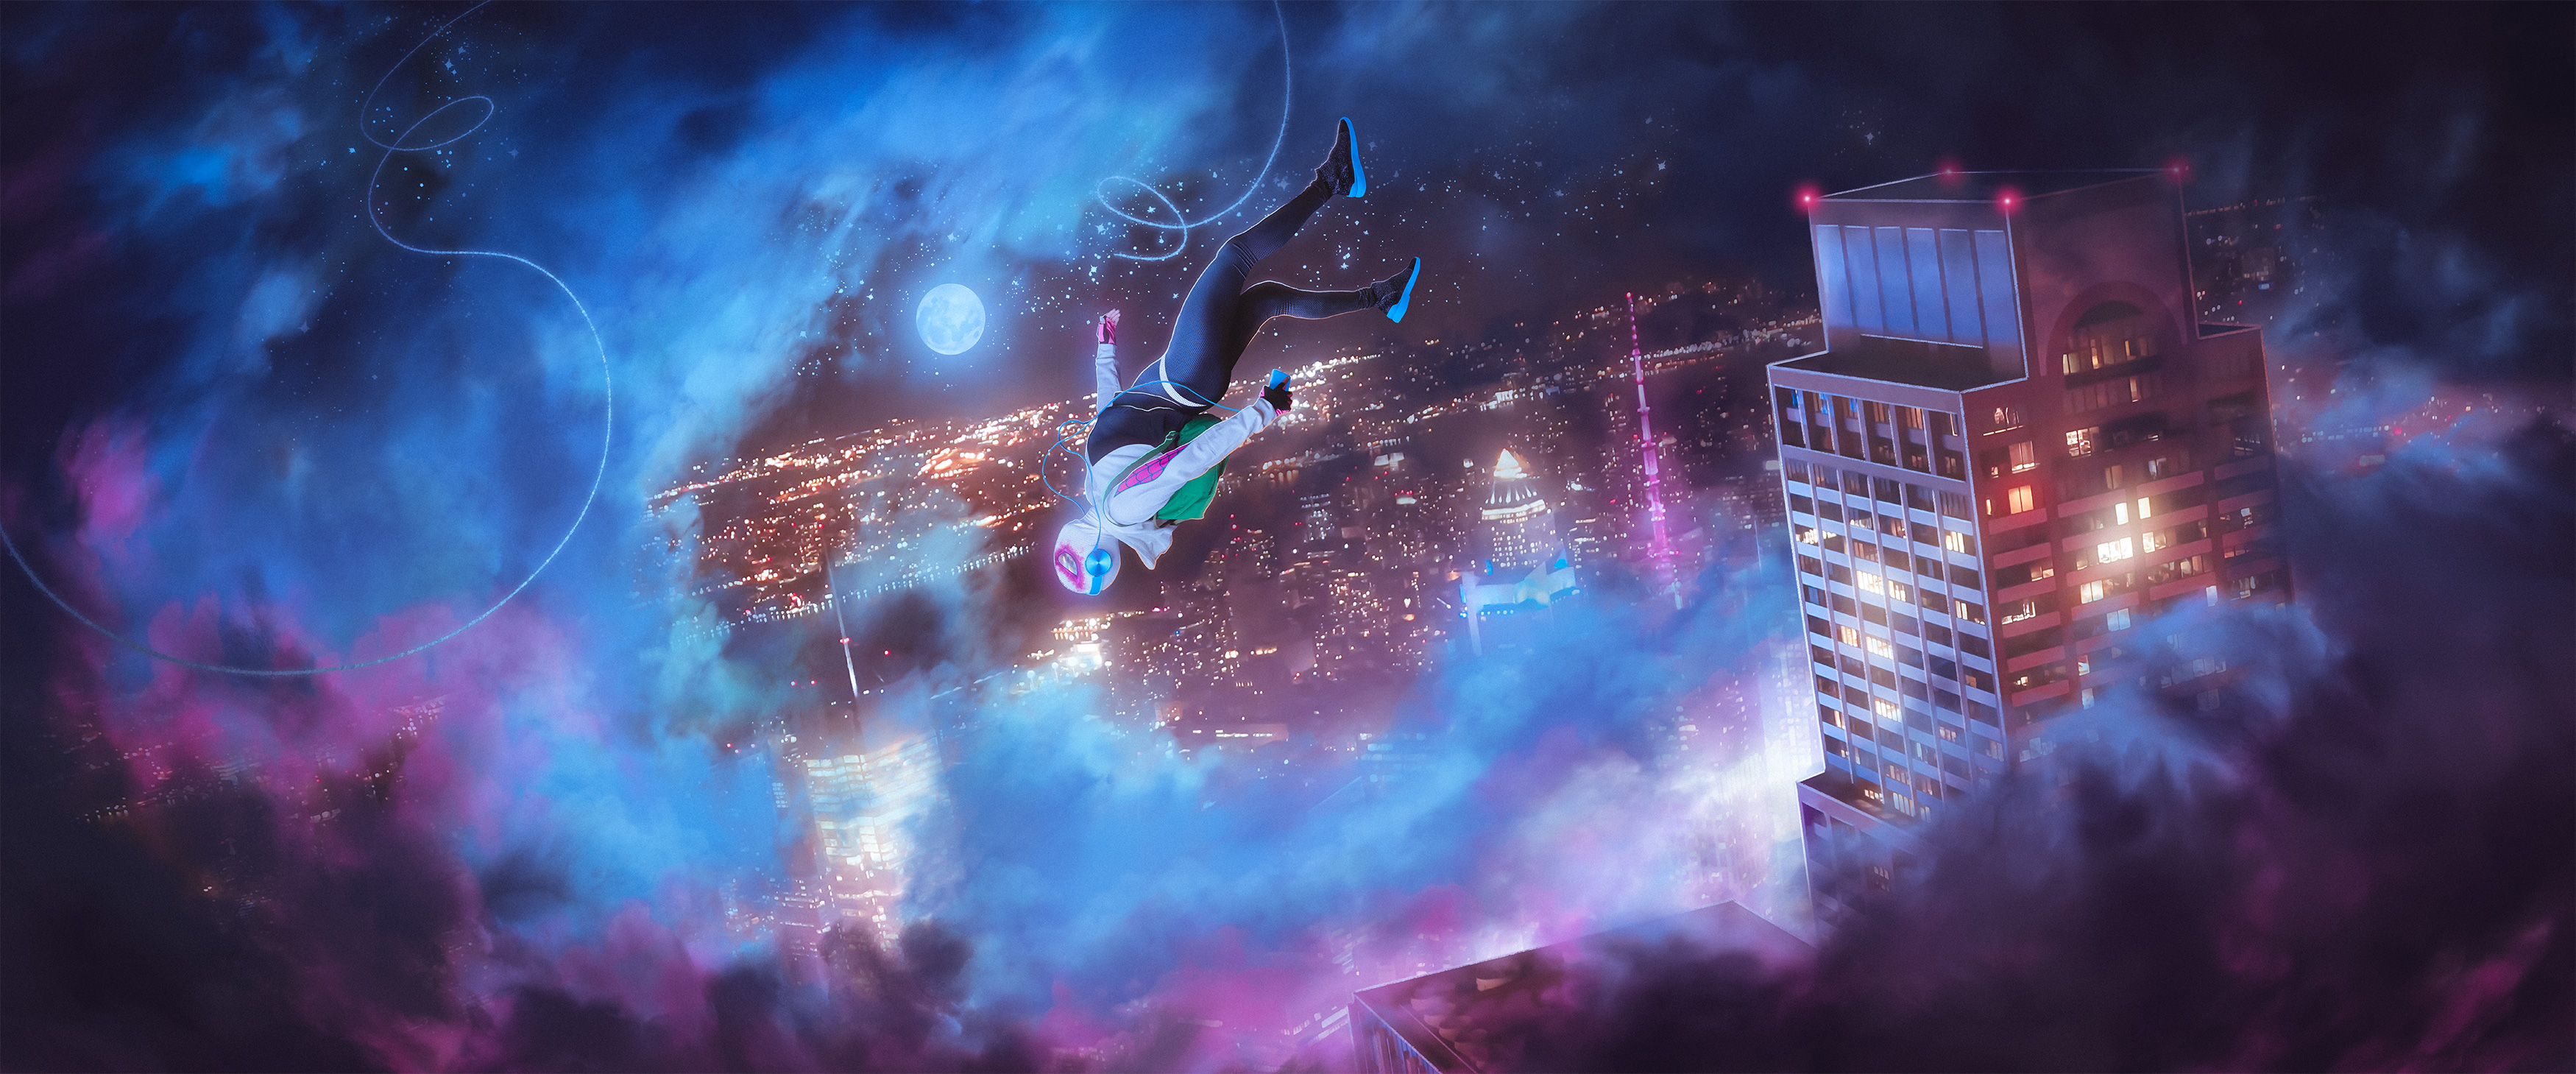 The Best Spider Gwen Wallpaper Pc Images